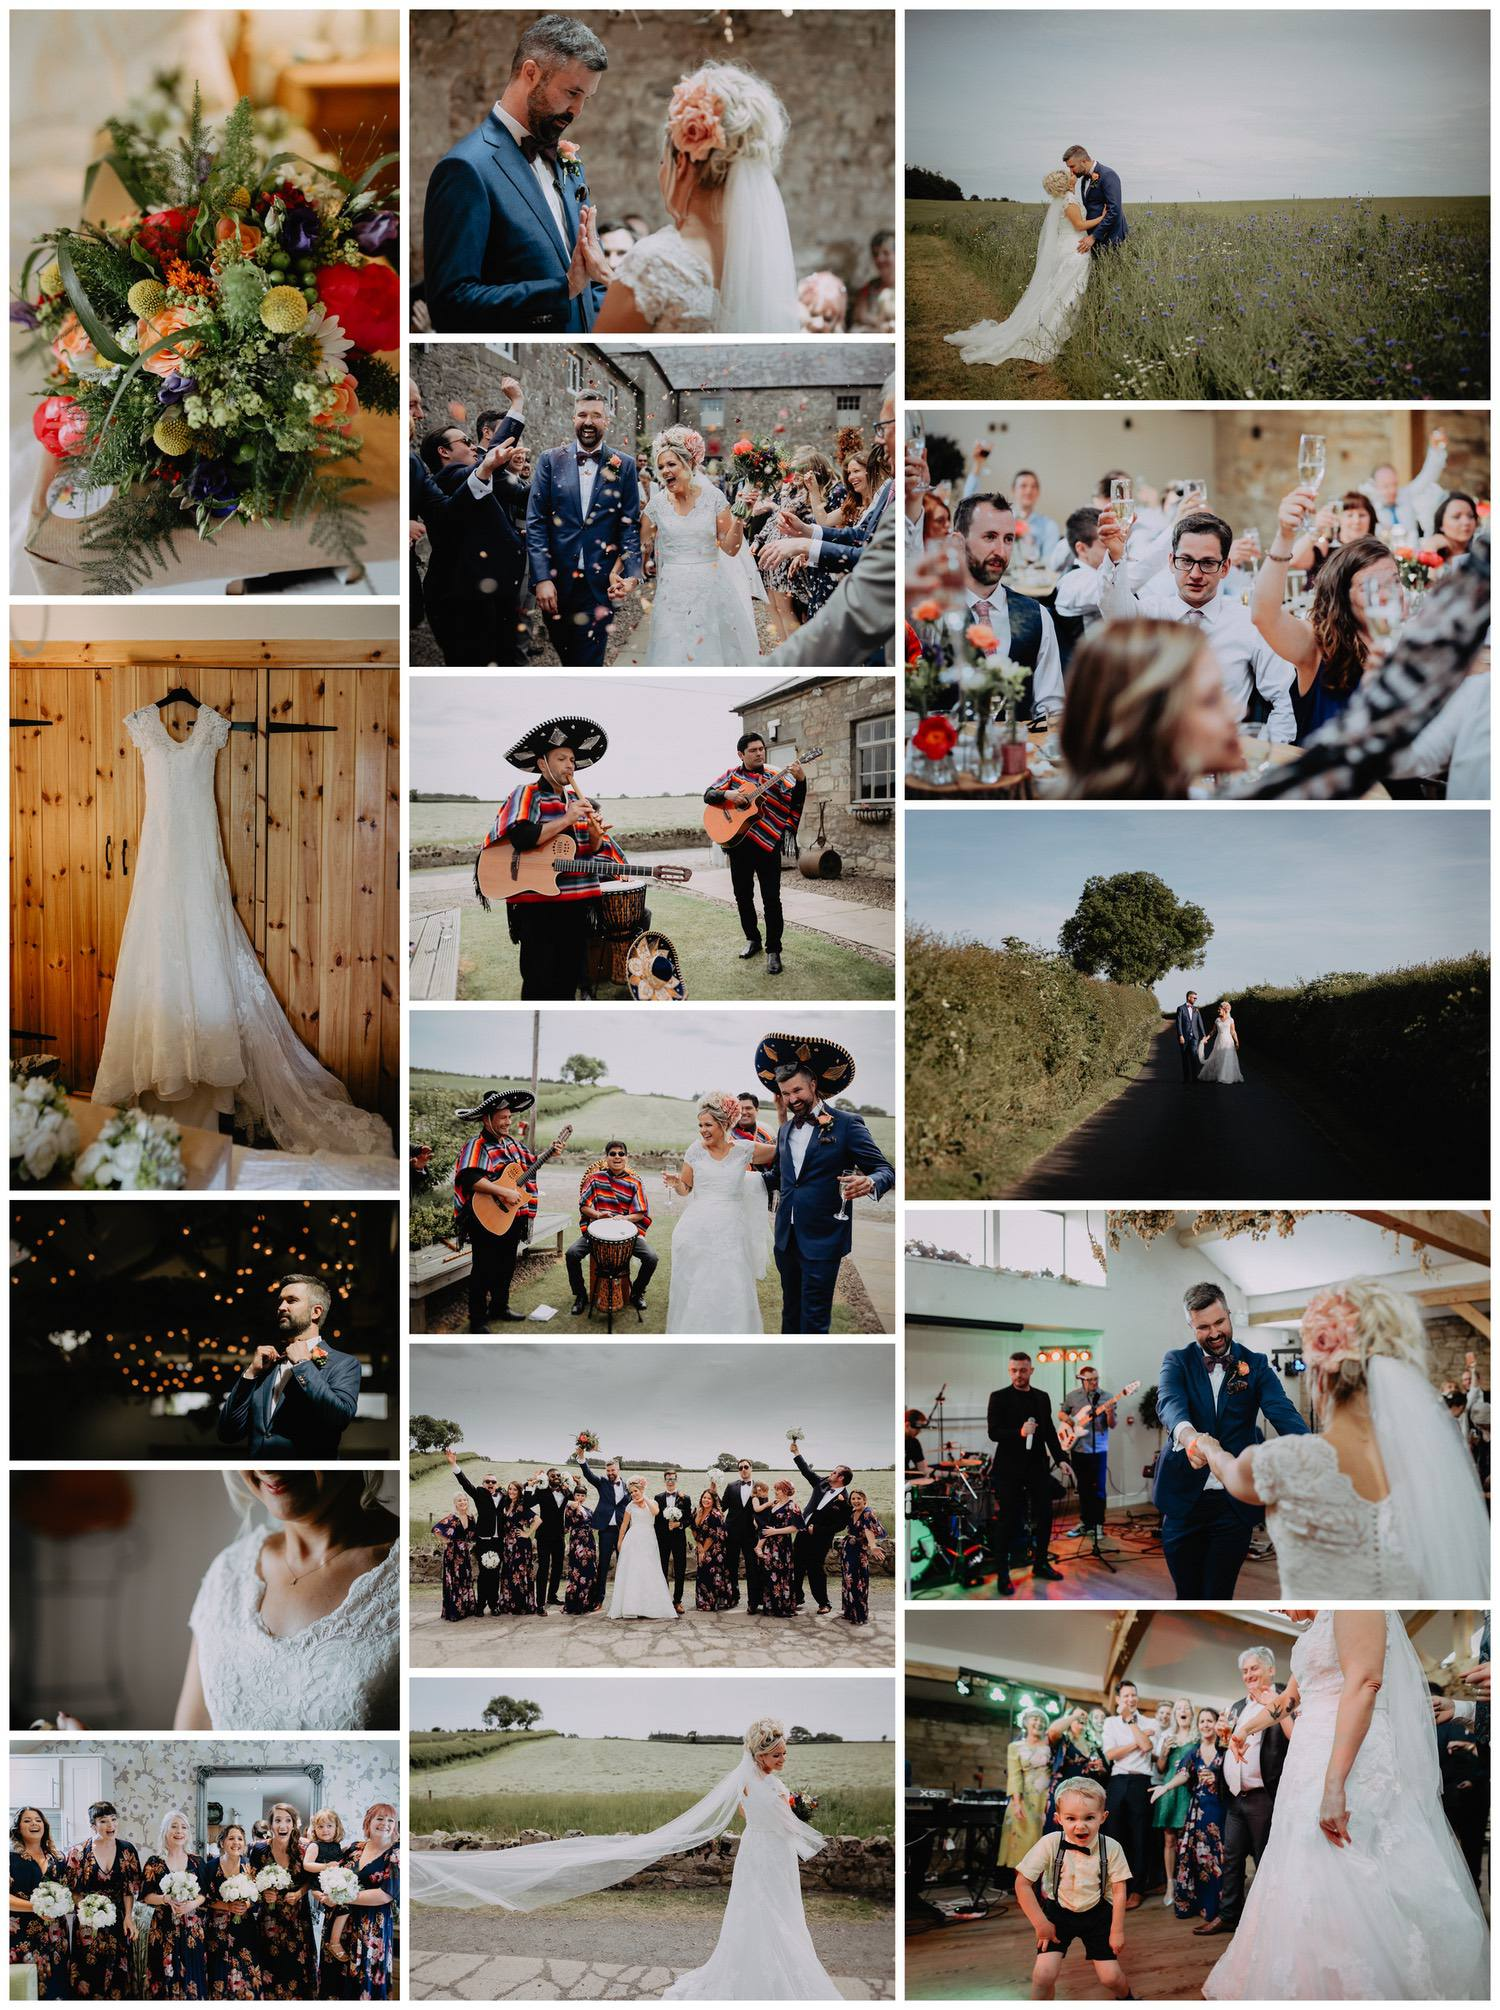 Doxford-Barns-Wedding-Videographer.jpg